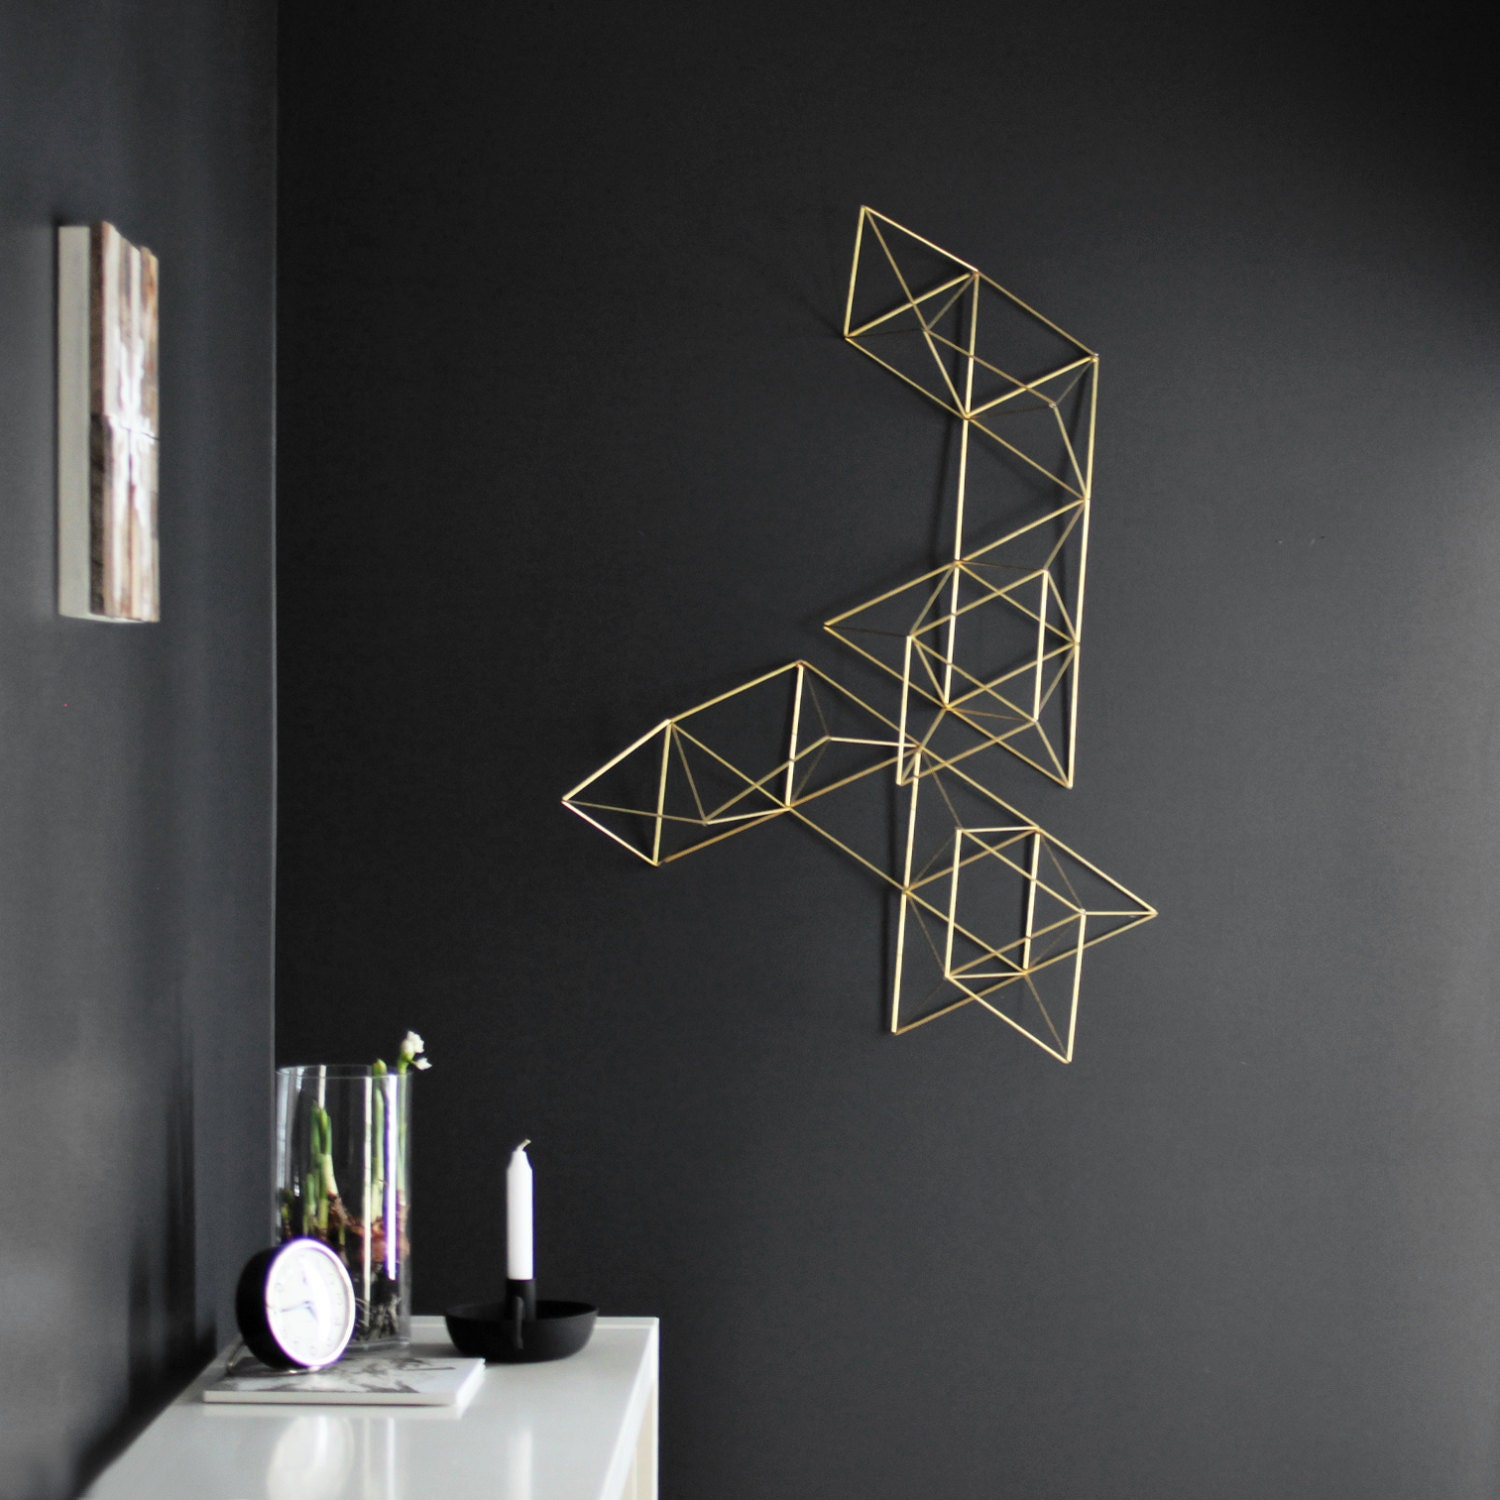 Geometric Metal Wall Decor : Geometric wall art related keywords suggestions